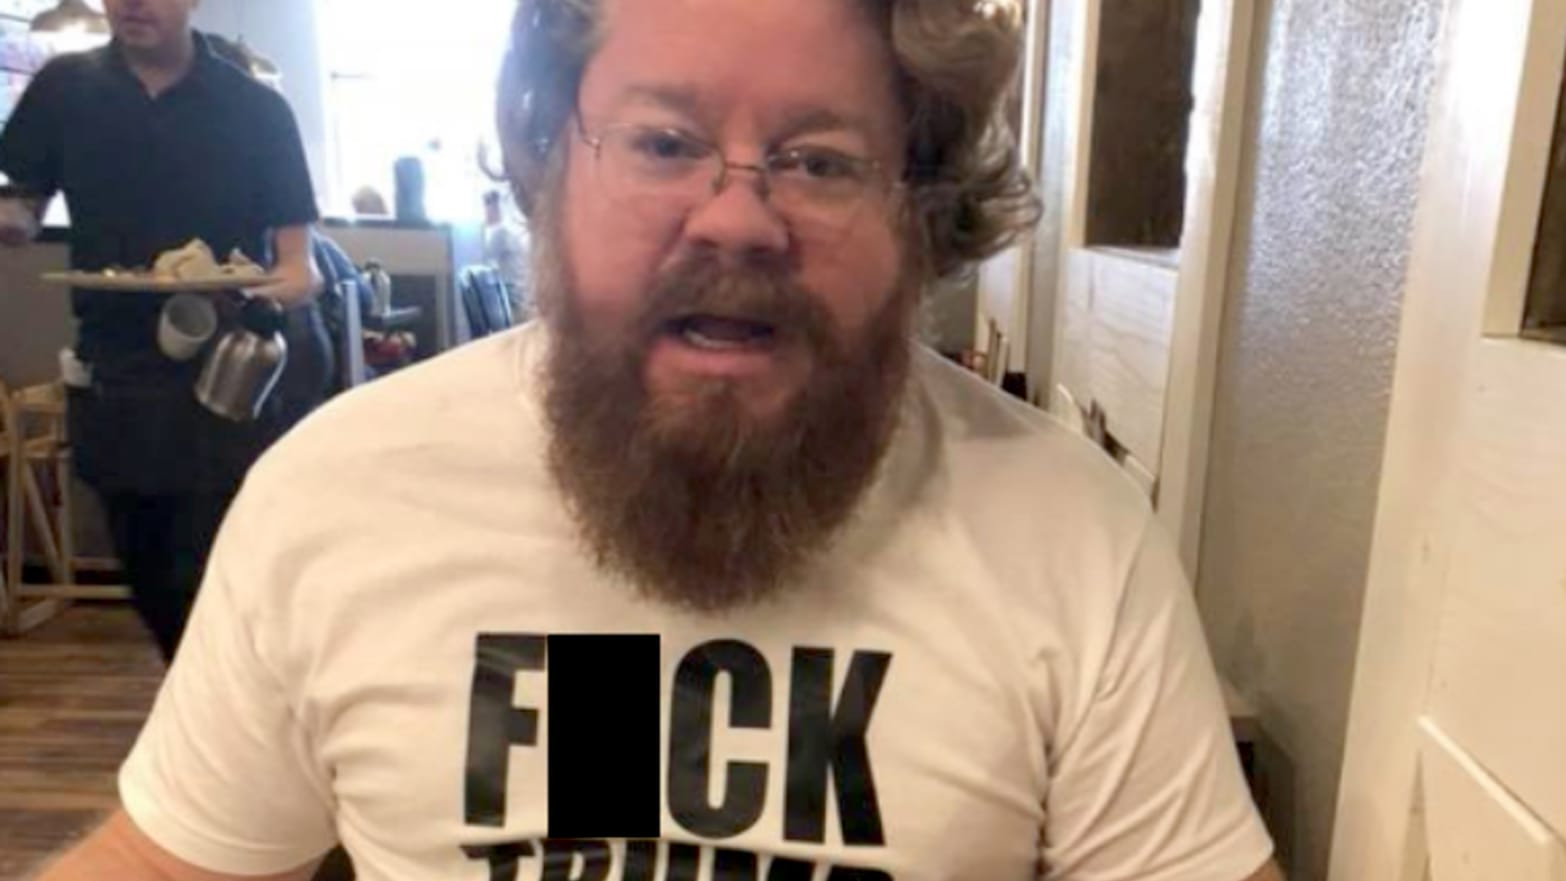 8c5ee8a50 Man Wearing  F ck Trump  T-Shirt Kicked Out of Texas Restaurant